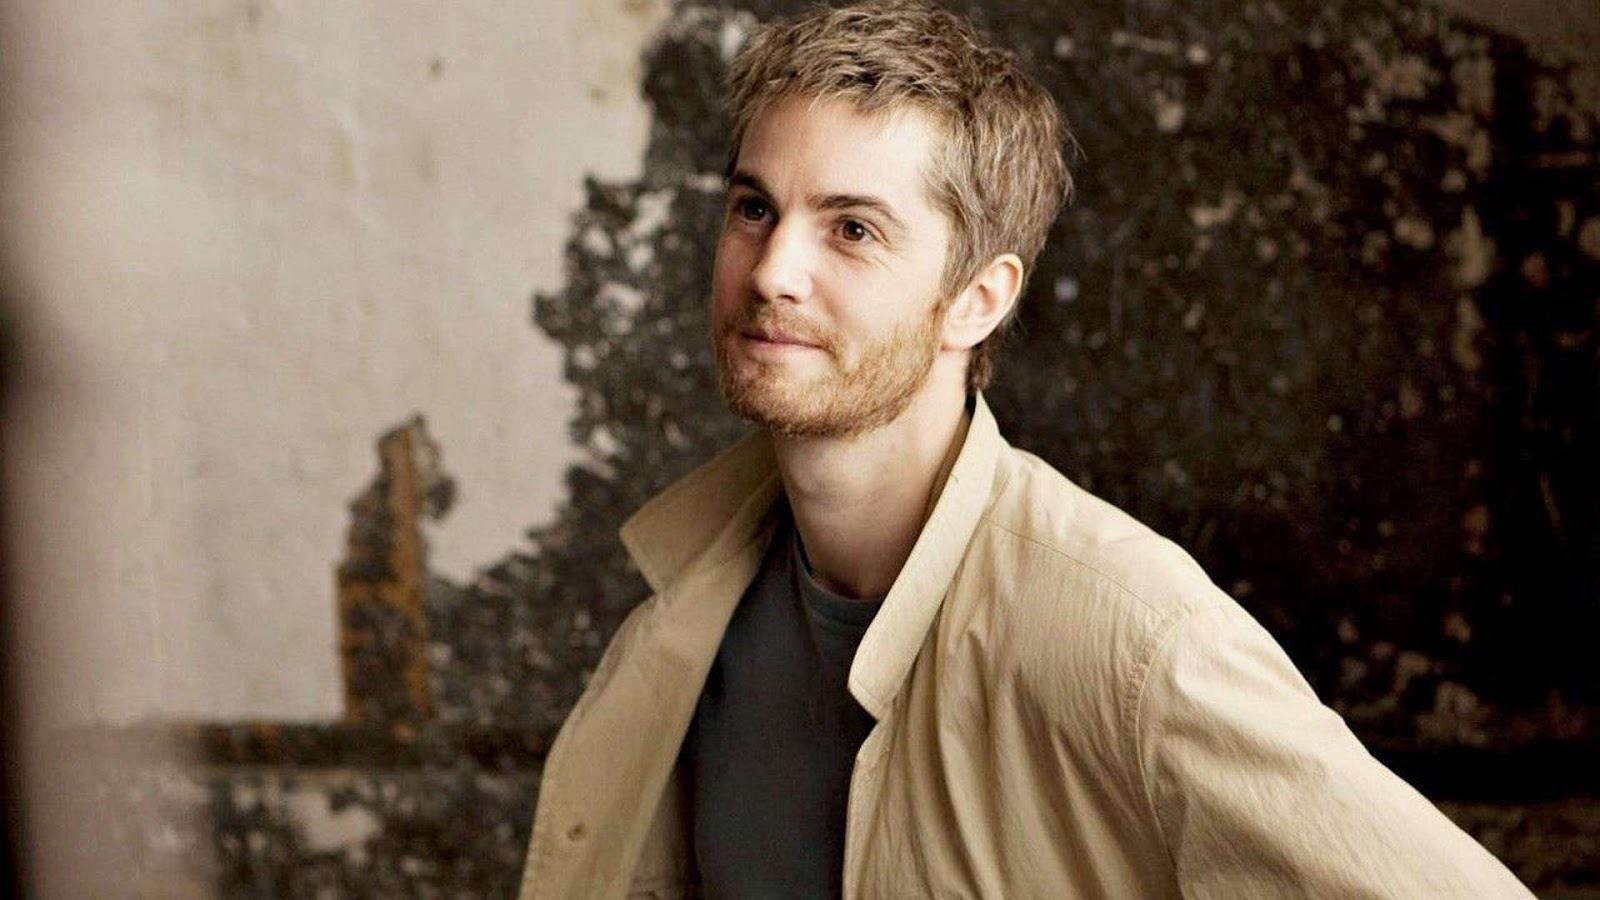 Jim Sturgess All Upcoming Movies List 2016, 2017 With -4104